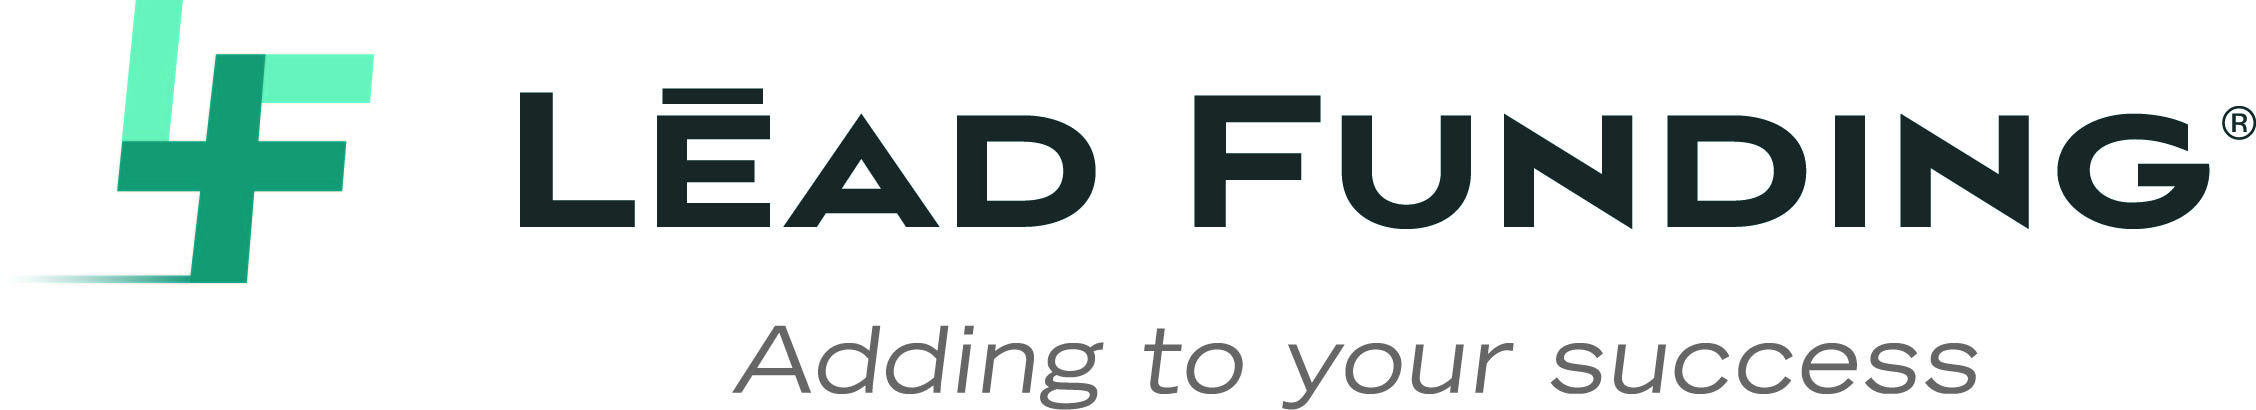 Lead Funding logo